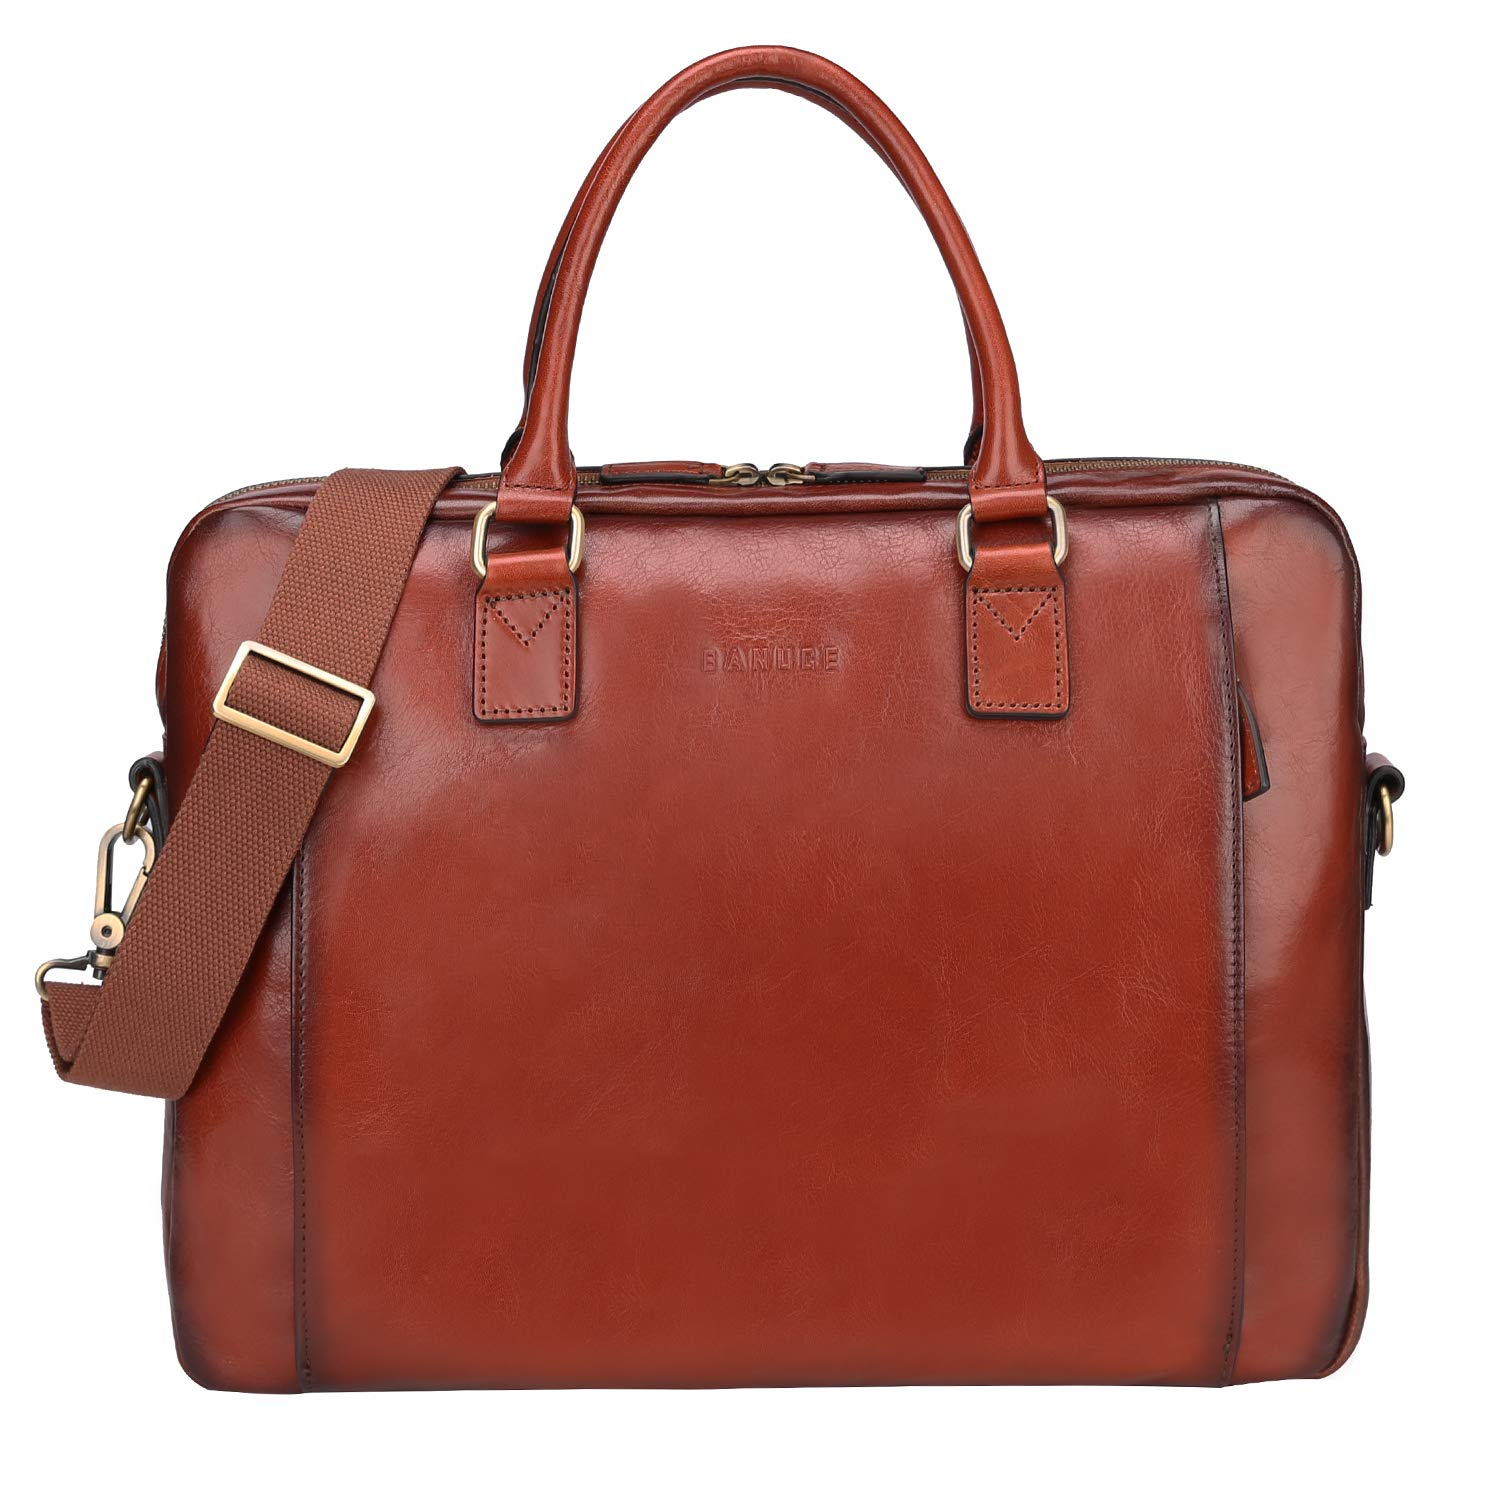 Banuce Vintage Full Grains Leather Briefcase for Women and Men Tote Satchel Purse Laptop Bag Brown